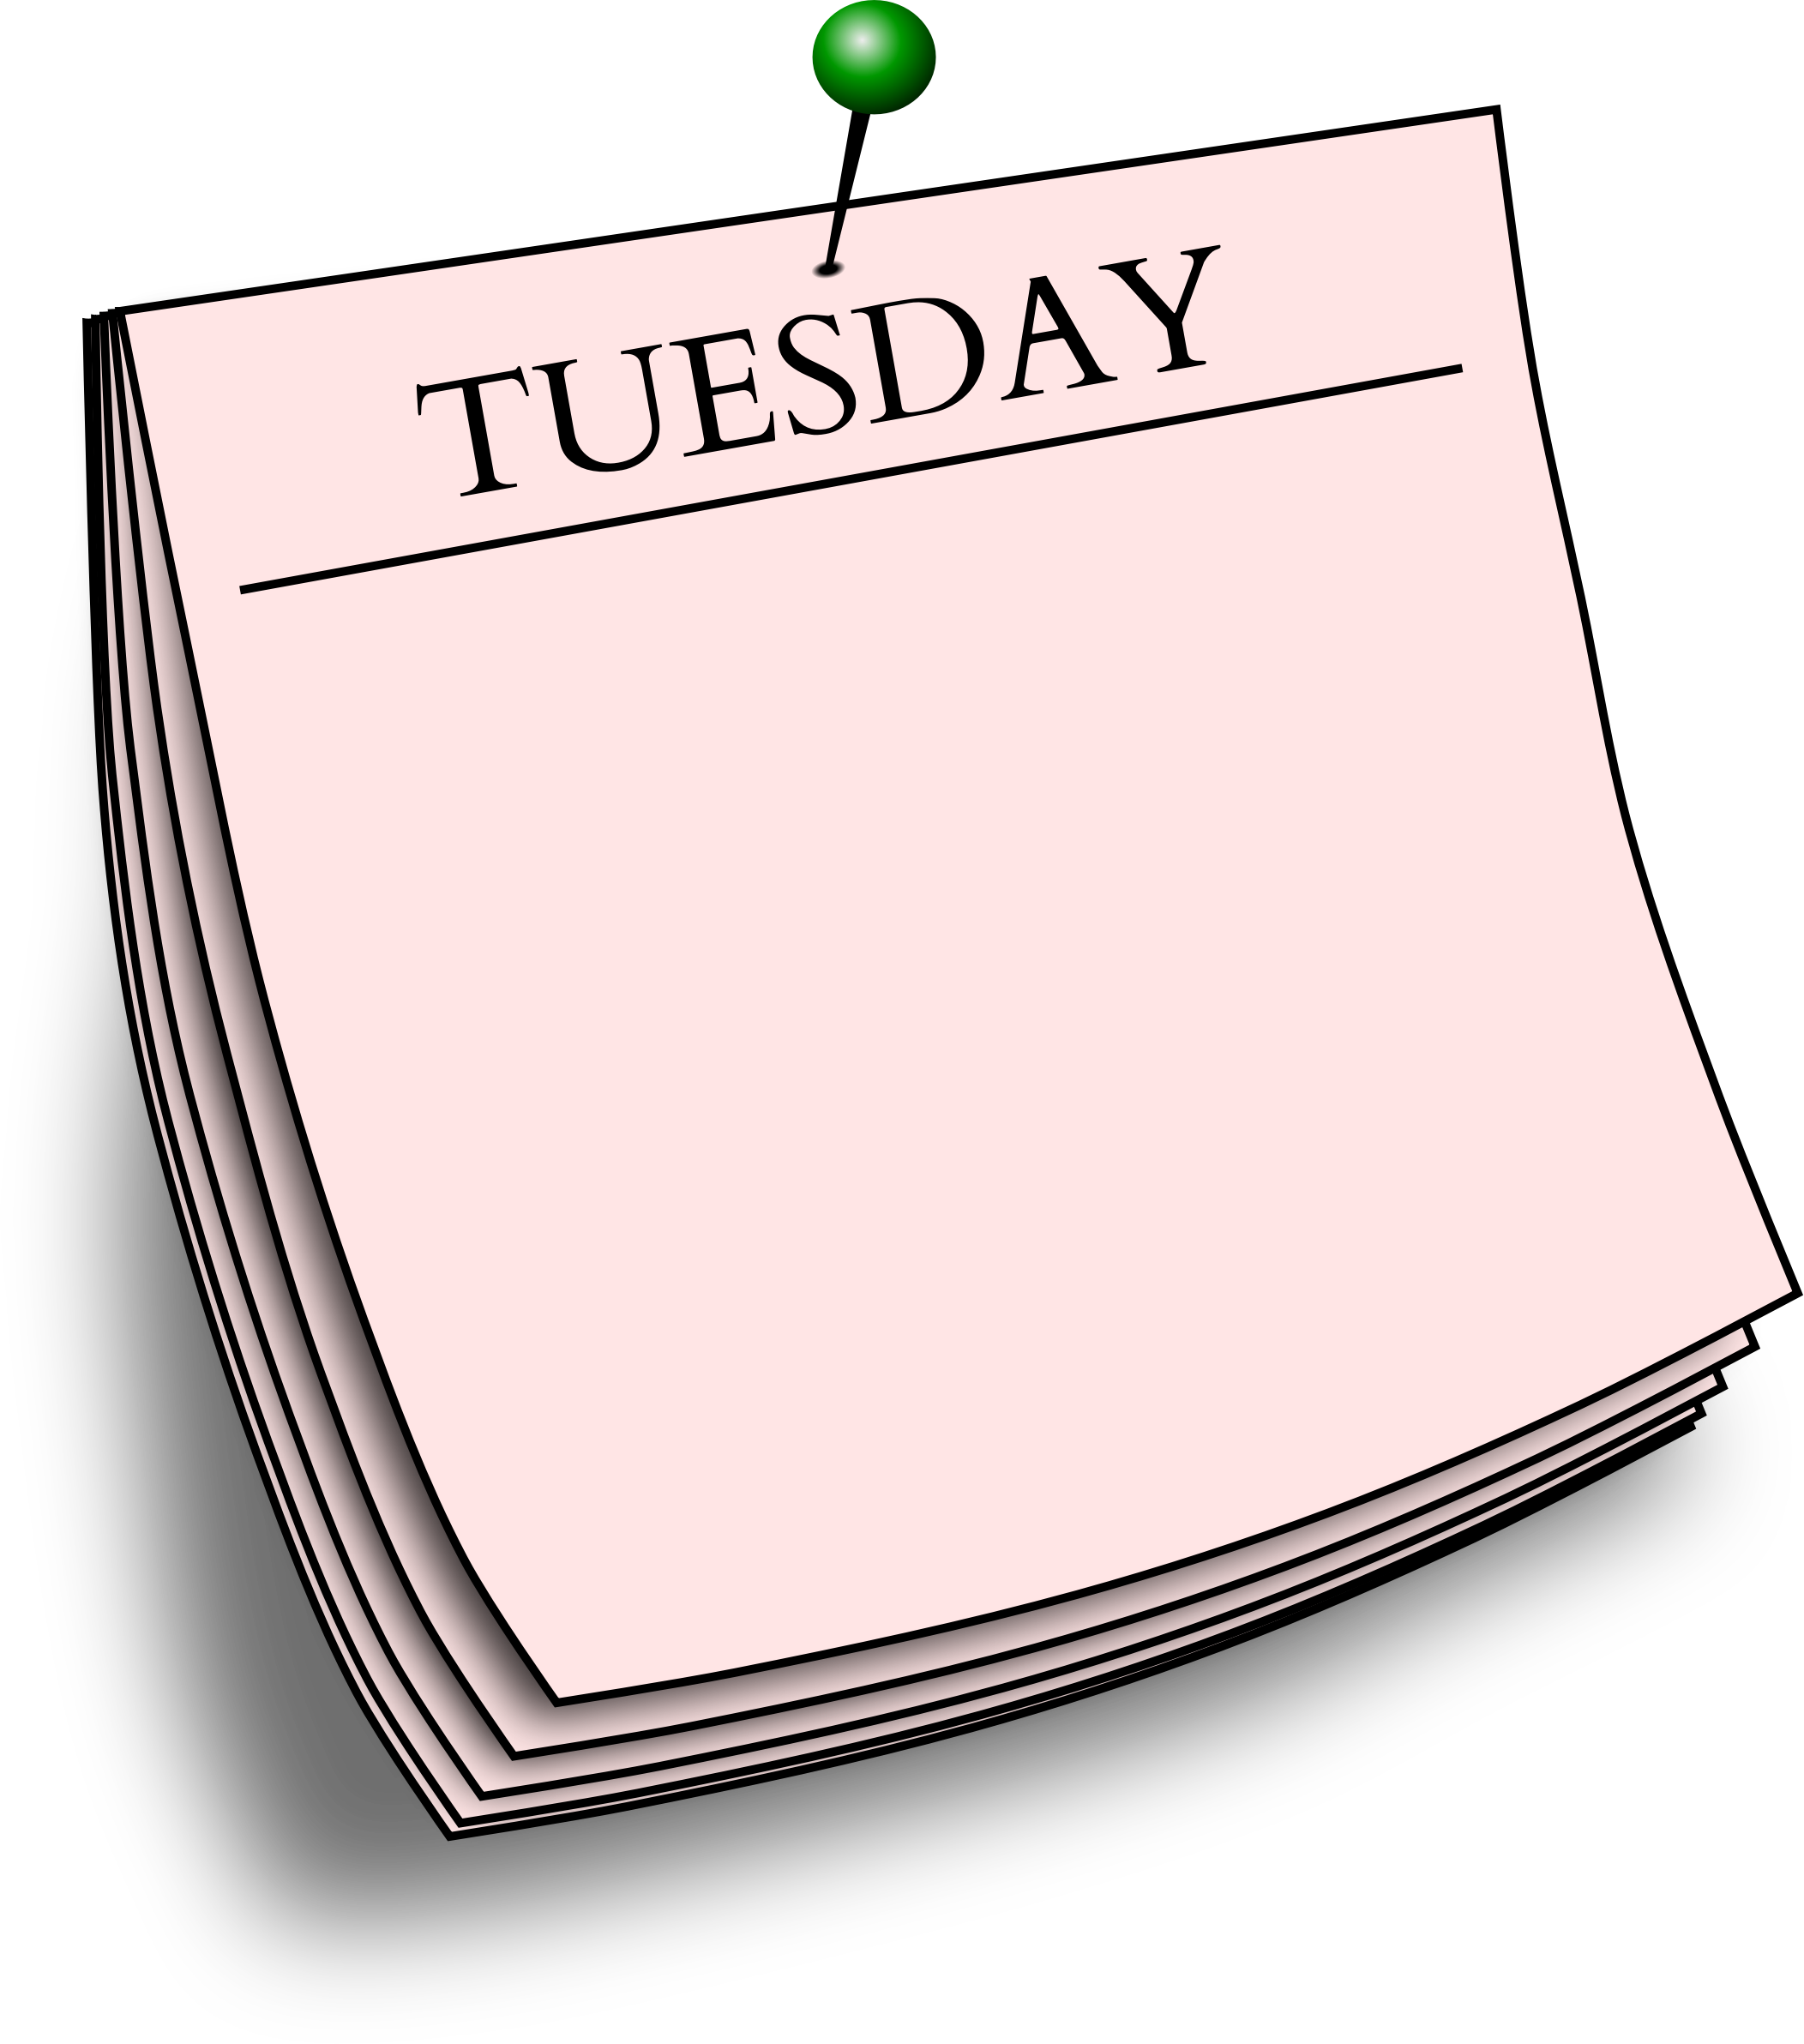 Wednesday clipart mix match day. Play days of the